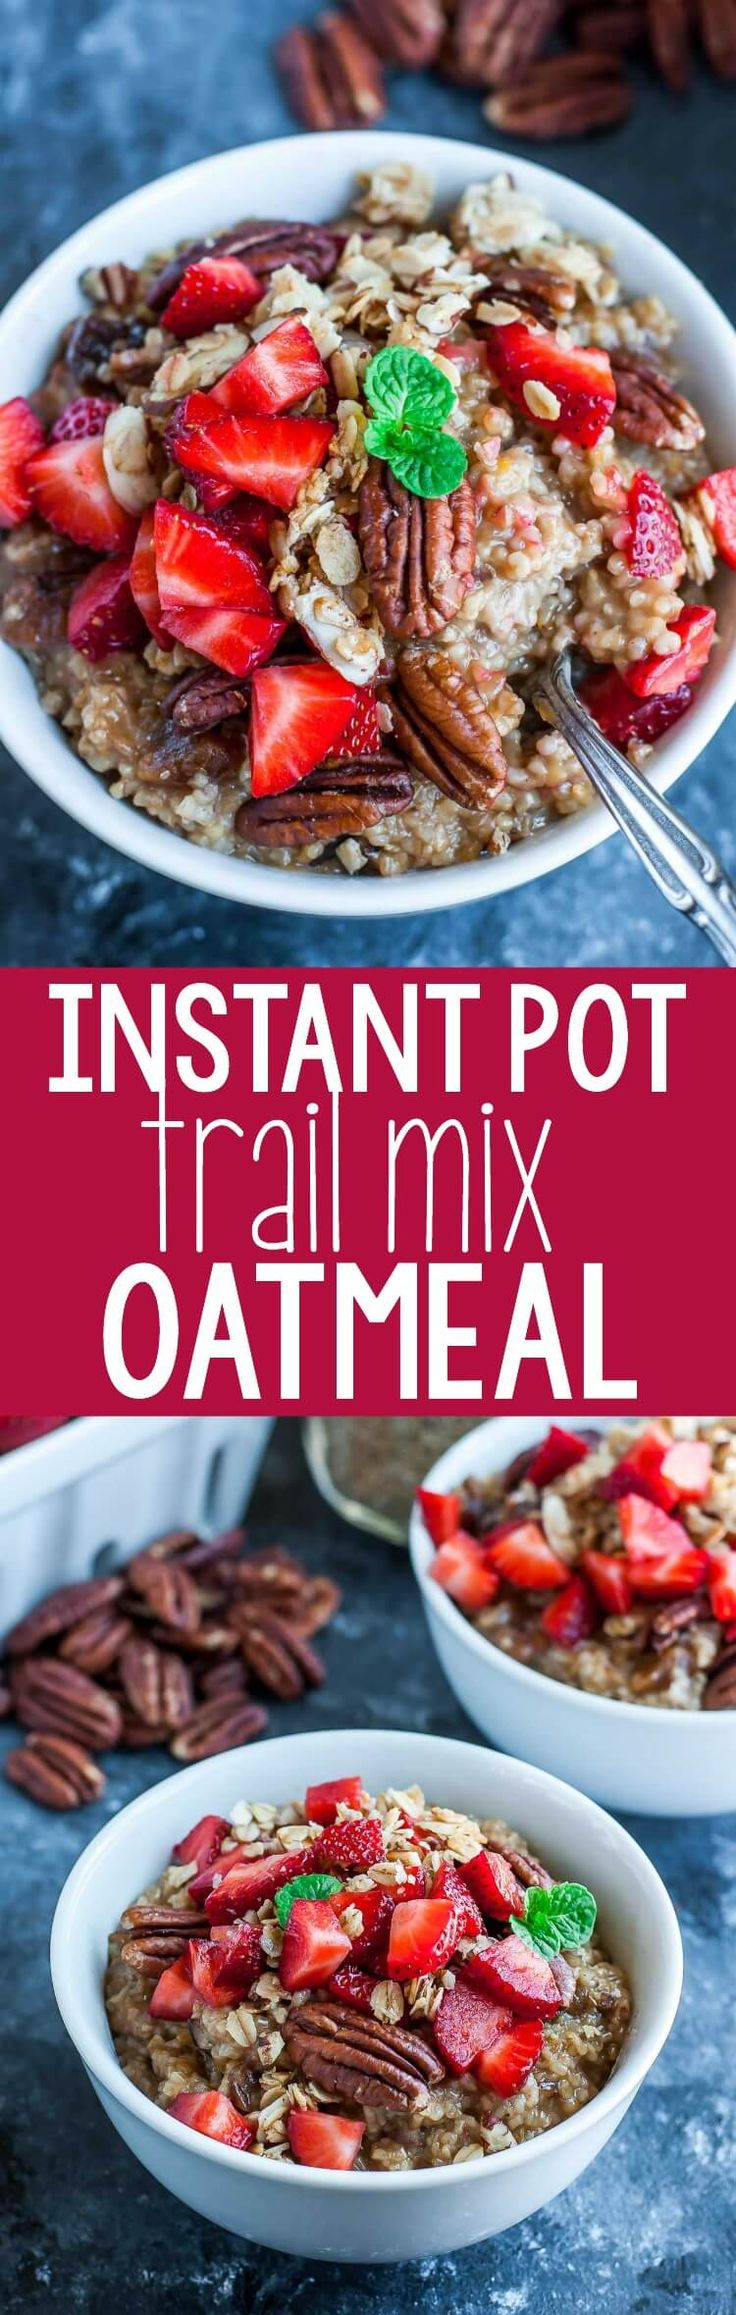 This tasty Instant Pot Strawberry Trail Mix Oatmeal is naturally sweetened and swirled with dried fruit and nuts for a healthy + speedy breakfast that's a breeze to make!